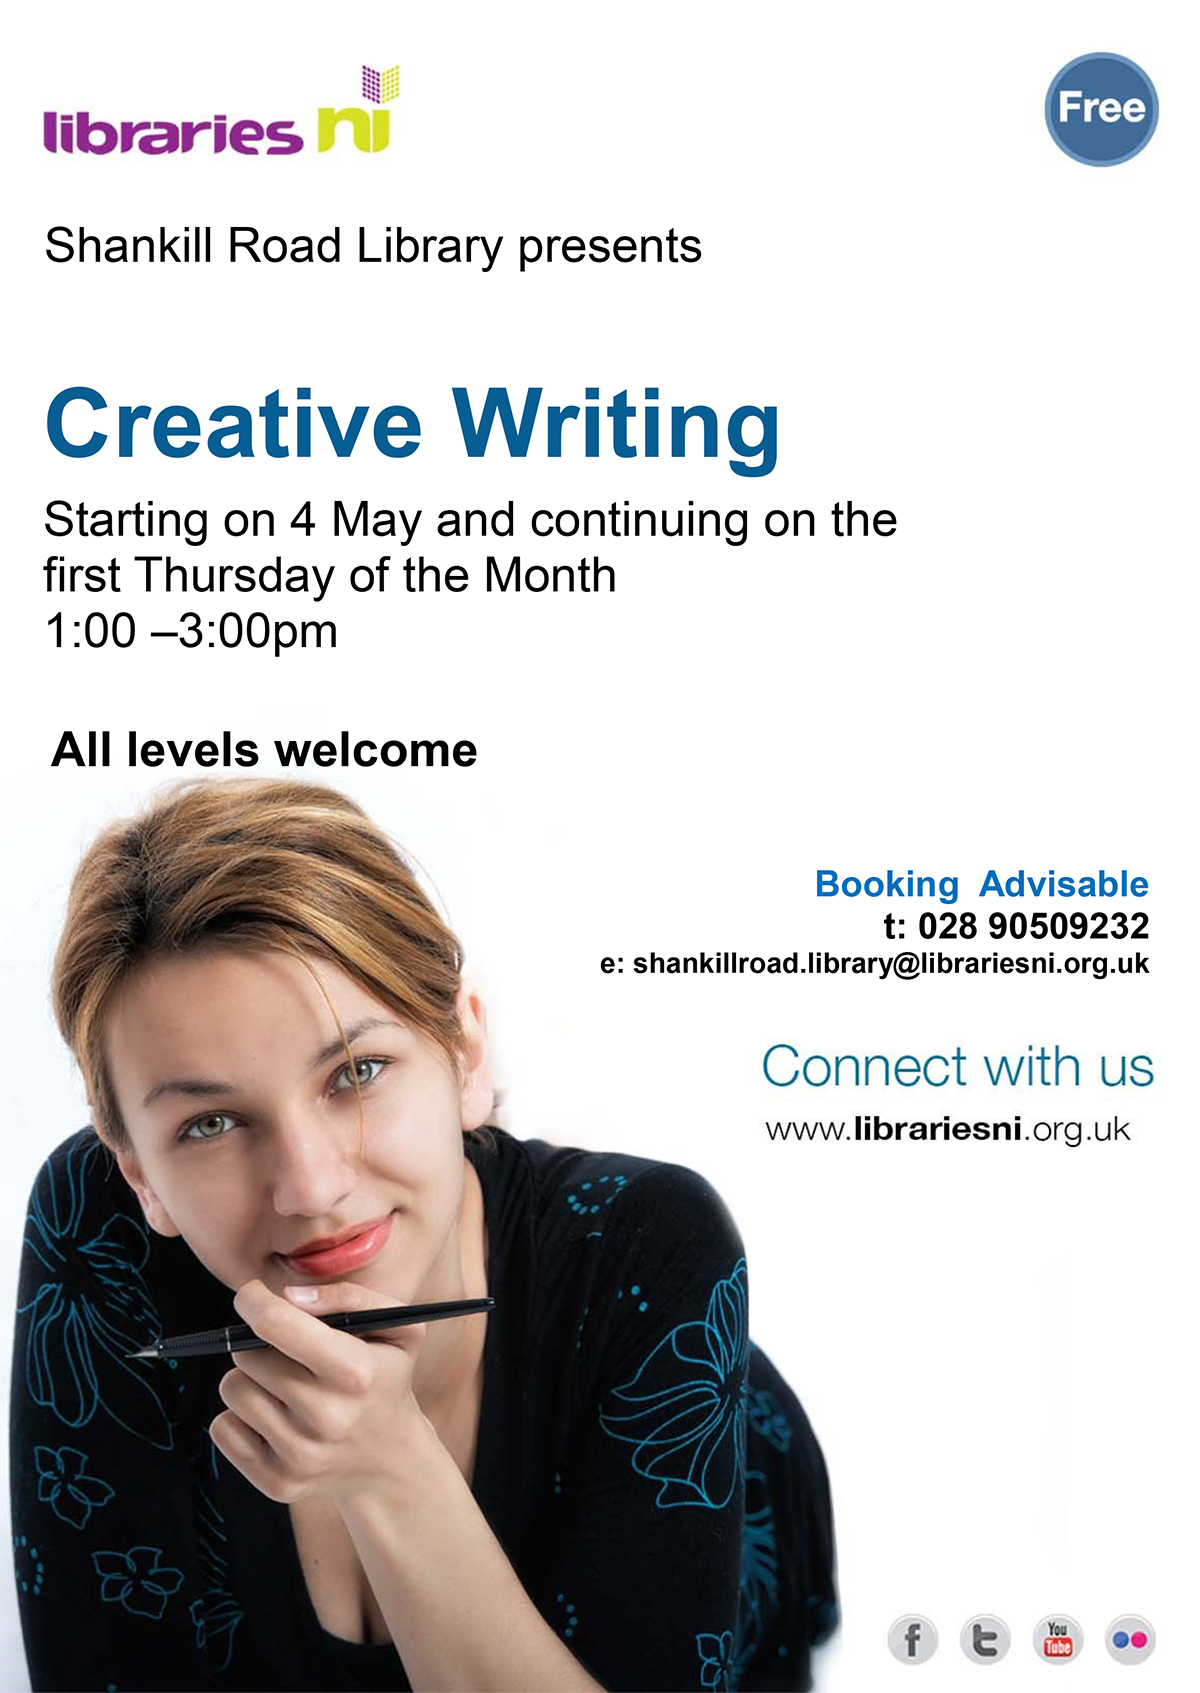 creative writing universities in england This course is for students who are passionate about literature and want to apply their critical reading skills to writing practice you are encouraged to write in a variety of styles and develop an understanding of the techniques and skills involved in storytelling across a range of genres we support you to think about your.